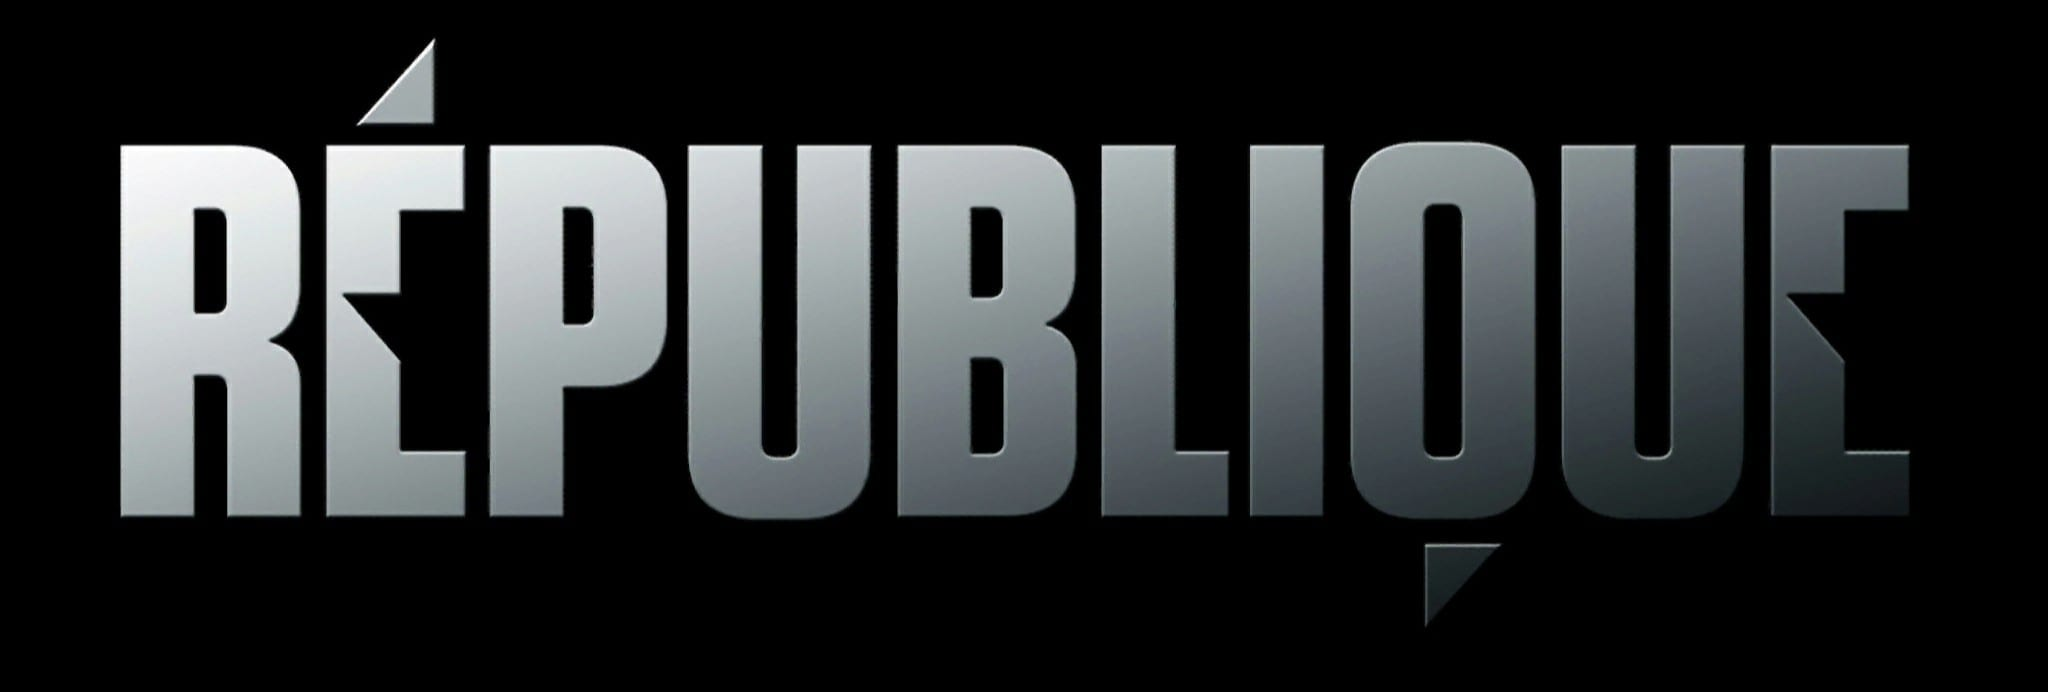 Republique logo2